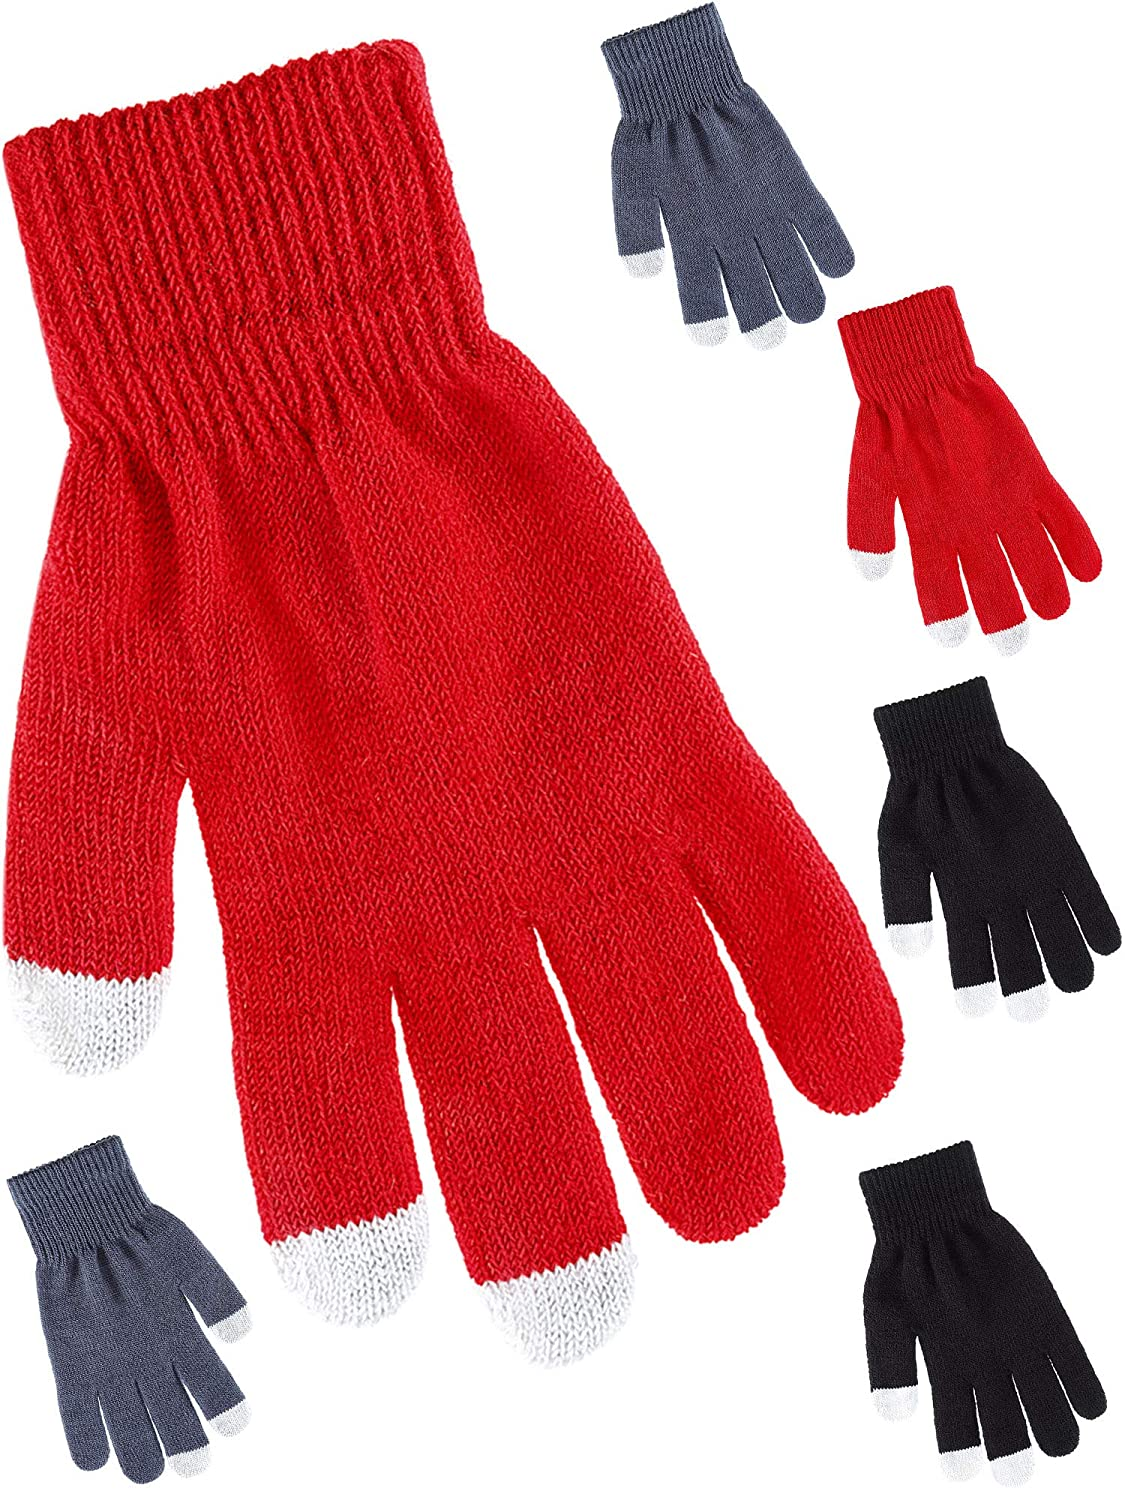 Tatuo 3 Pairs Texting Gloves Touchscreen Gloves Stretch Knitted Mechanic Gloves Winter Warm Gloves